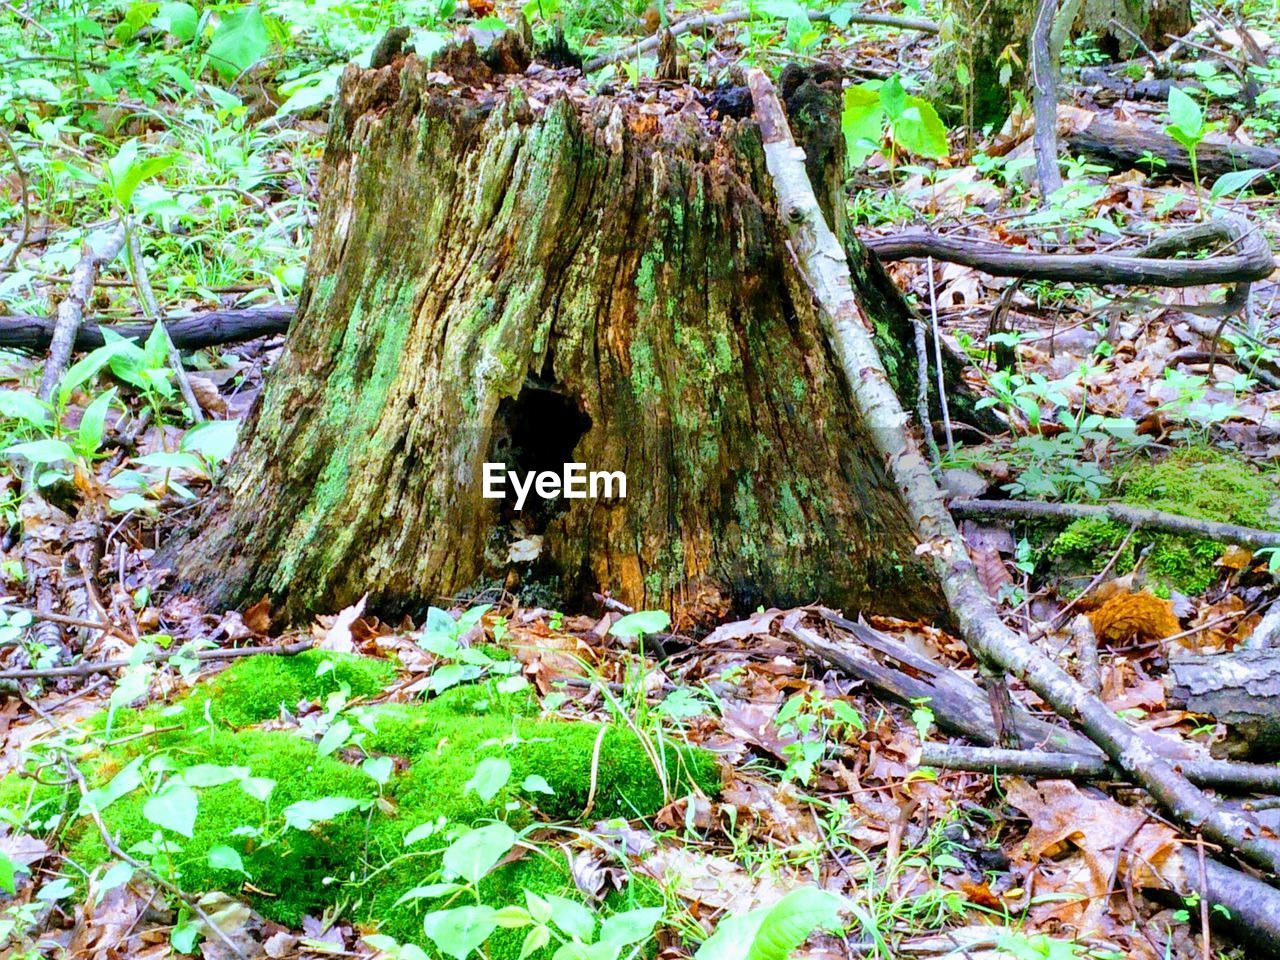 tree, plant, land, forest, day, nature, growth, tree trunk, no people, trunk, plant part, tranquility, moss, leaf, field, green color, outdoors, bark, beauty in nature, close-up, woodland